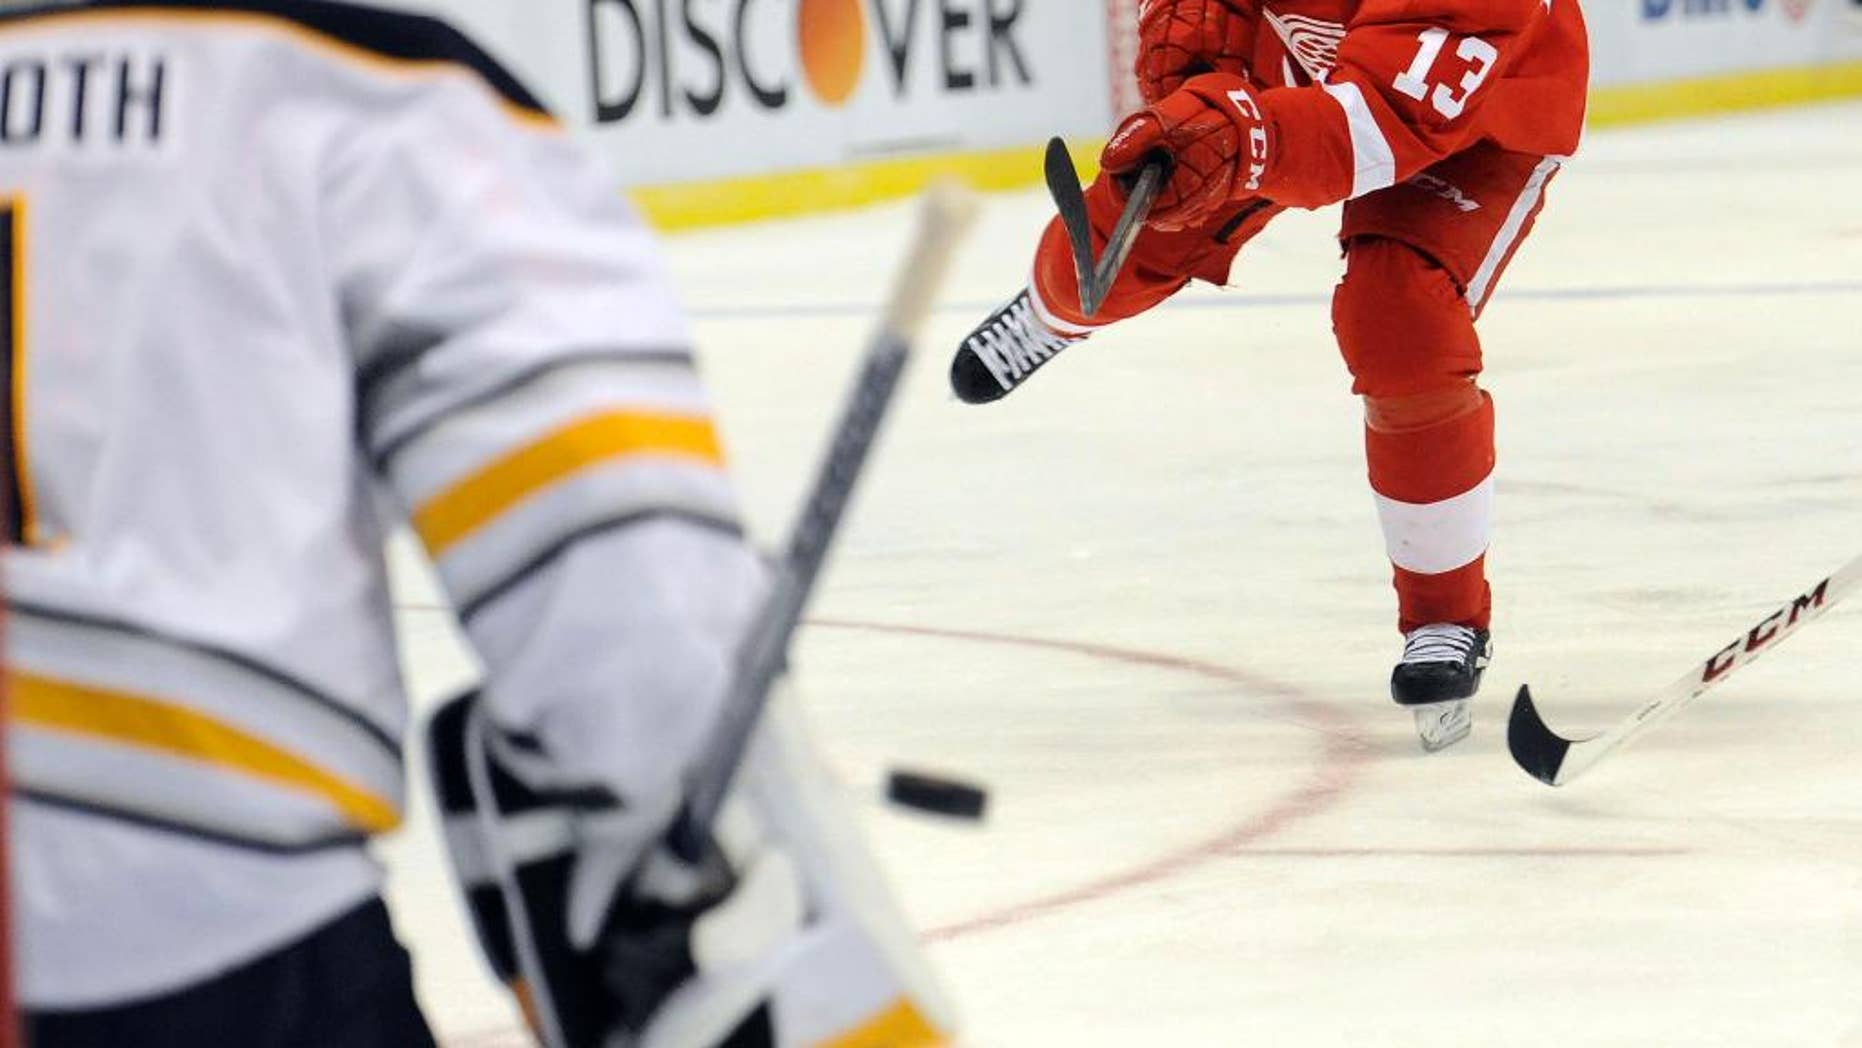 Detroit Red Wings center Pavel Datsyuk (13) of Russia, right, shoots the puck at Buffalo Sabres goalie Jhonas Enroth (1) of Sweden in the first period of an NHL hockey game at Joe Louis Arena in Detroit, Sunday, Jan. 18, 2015.  (AP Photo/Jose Juarez)